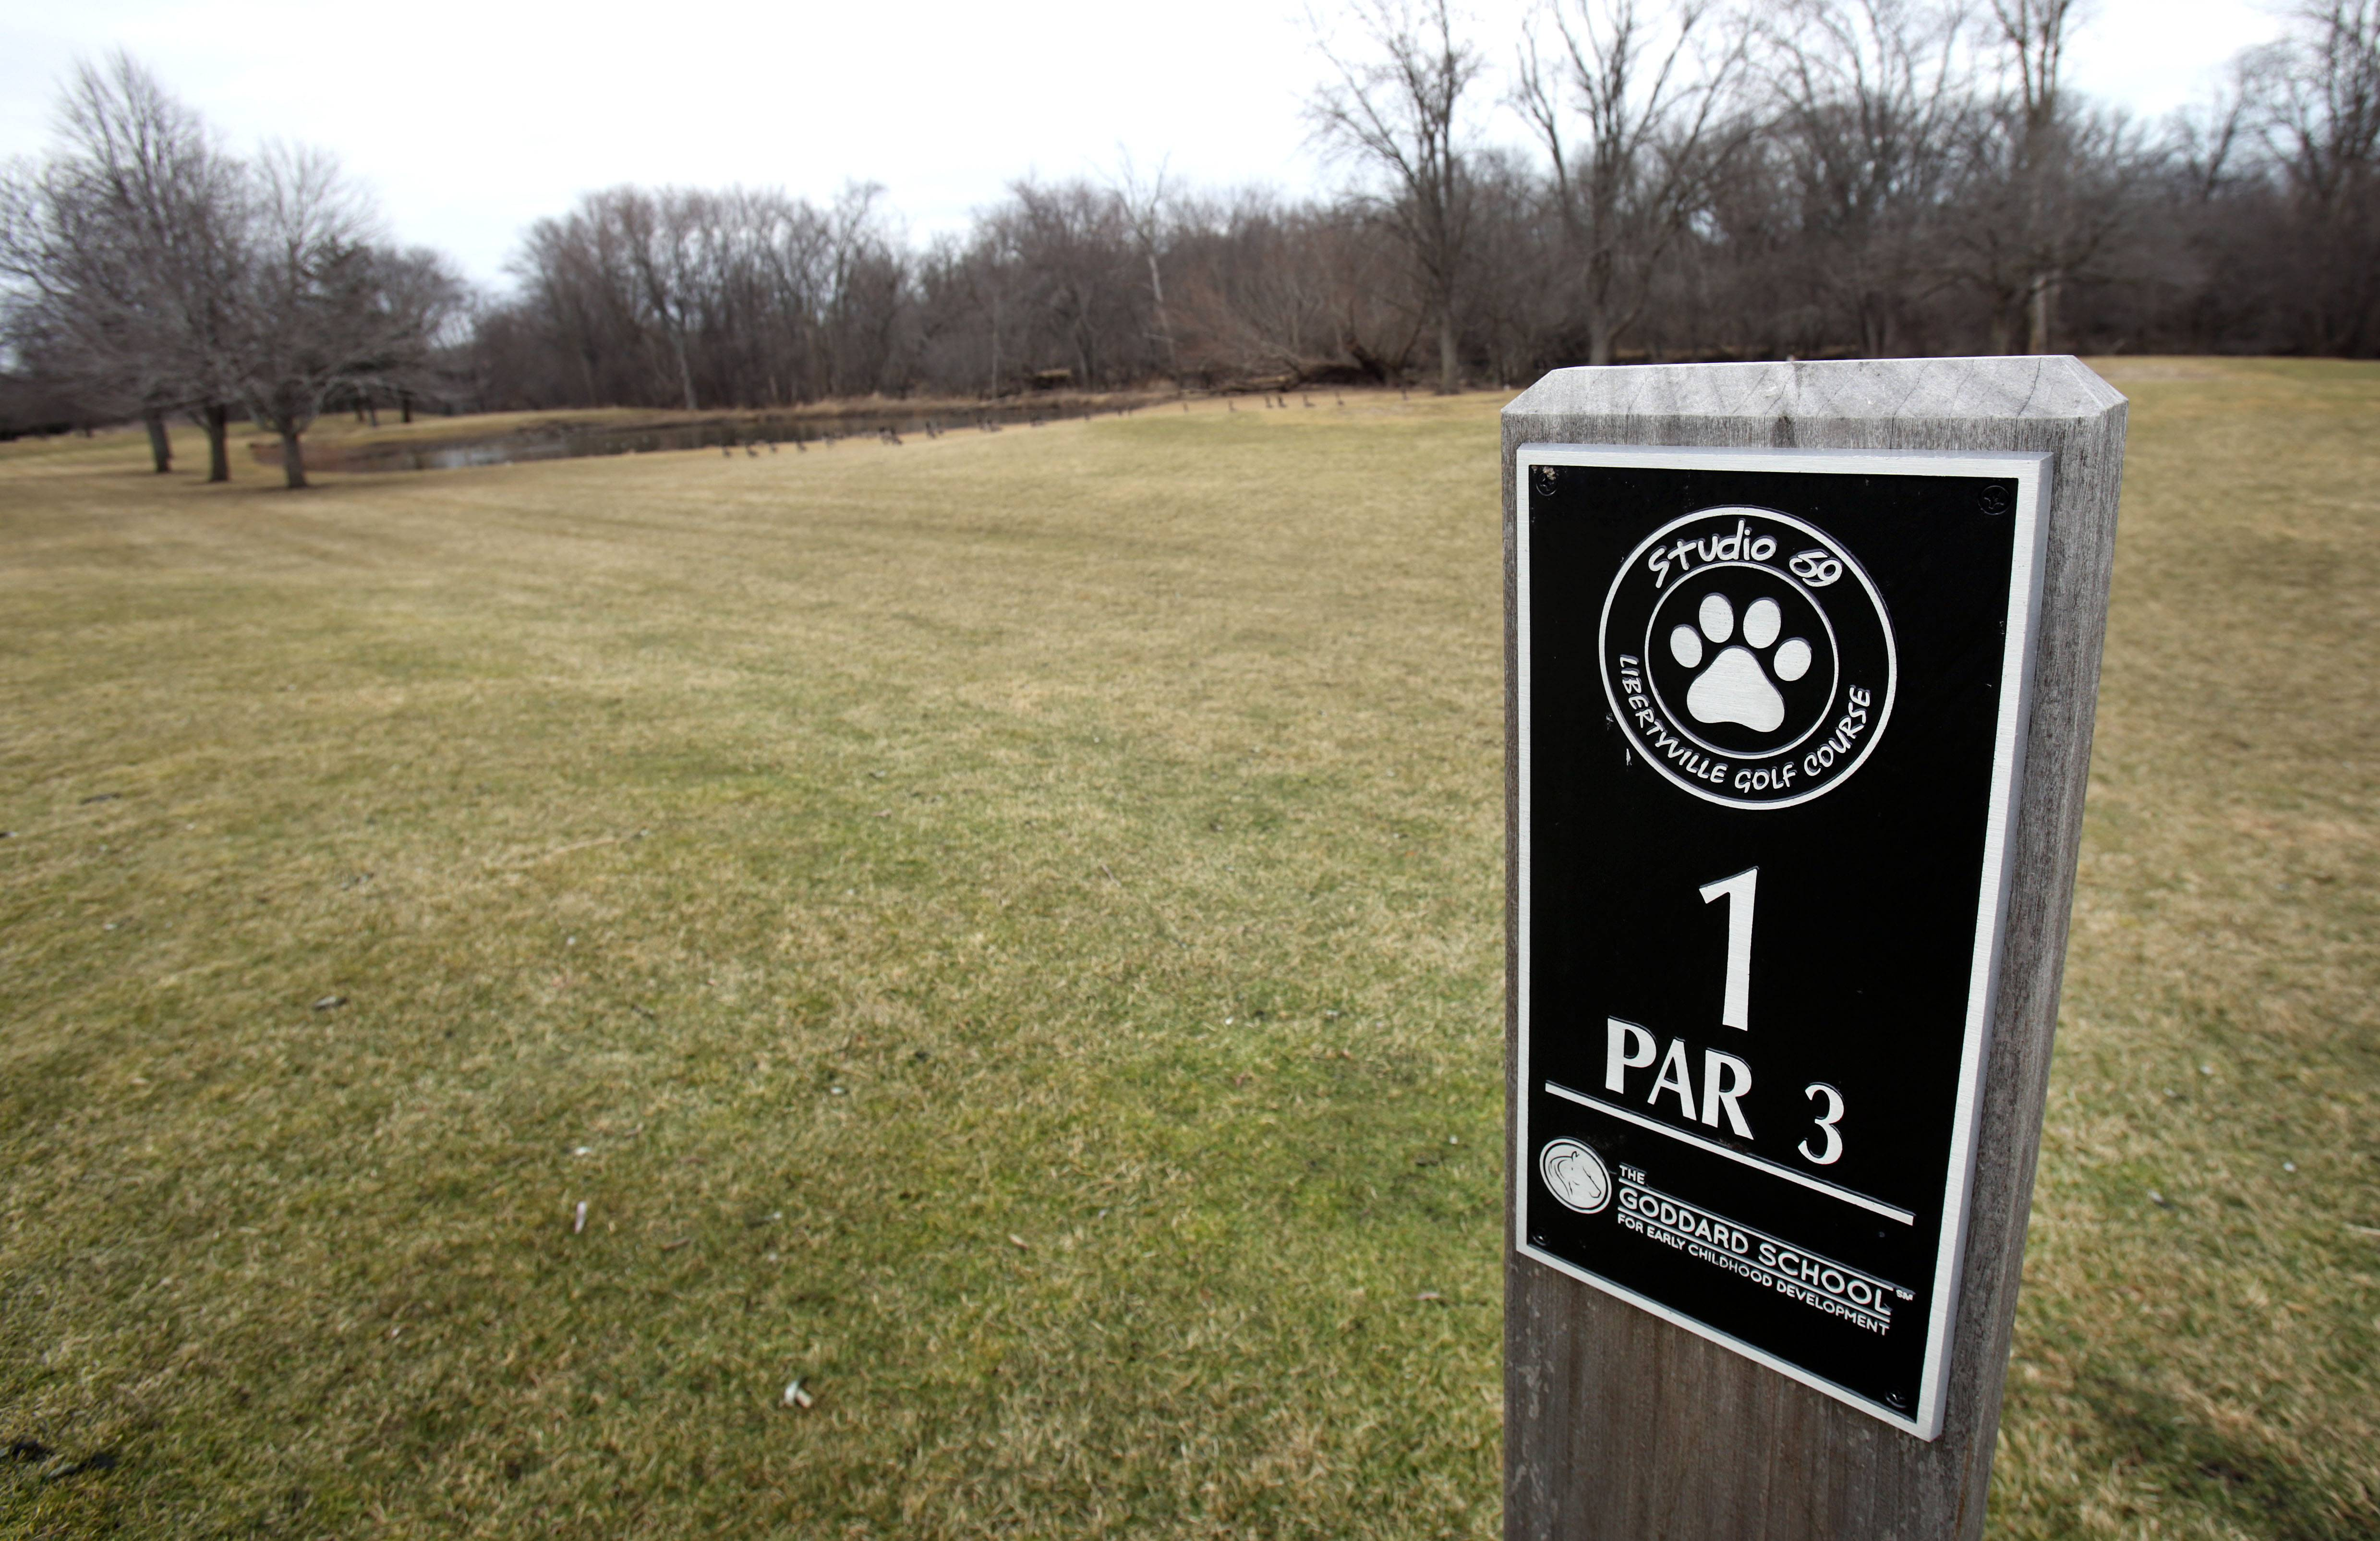 Libertyville officials again face decision with 9-hole golf course